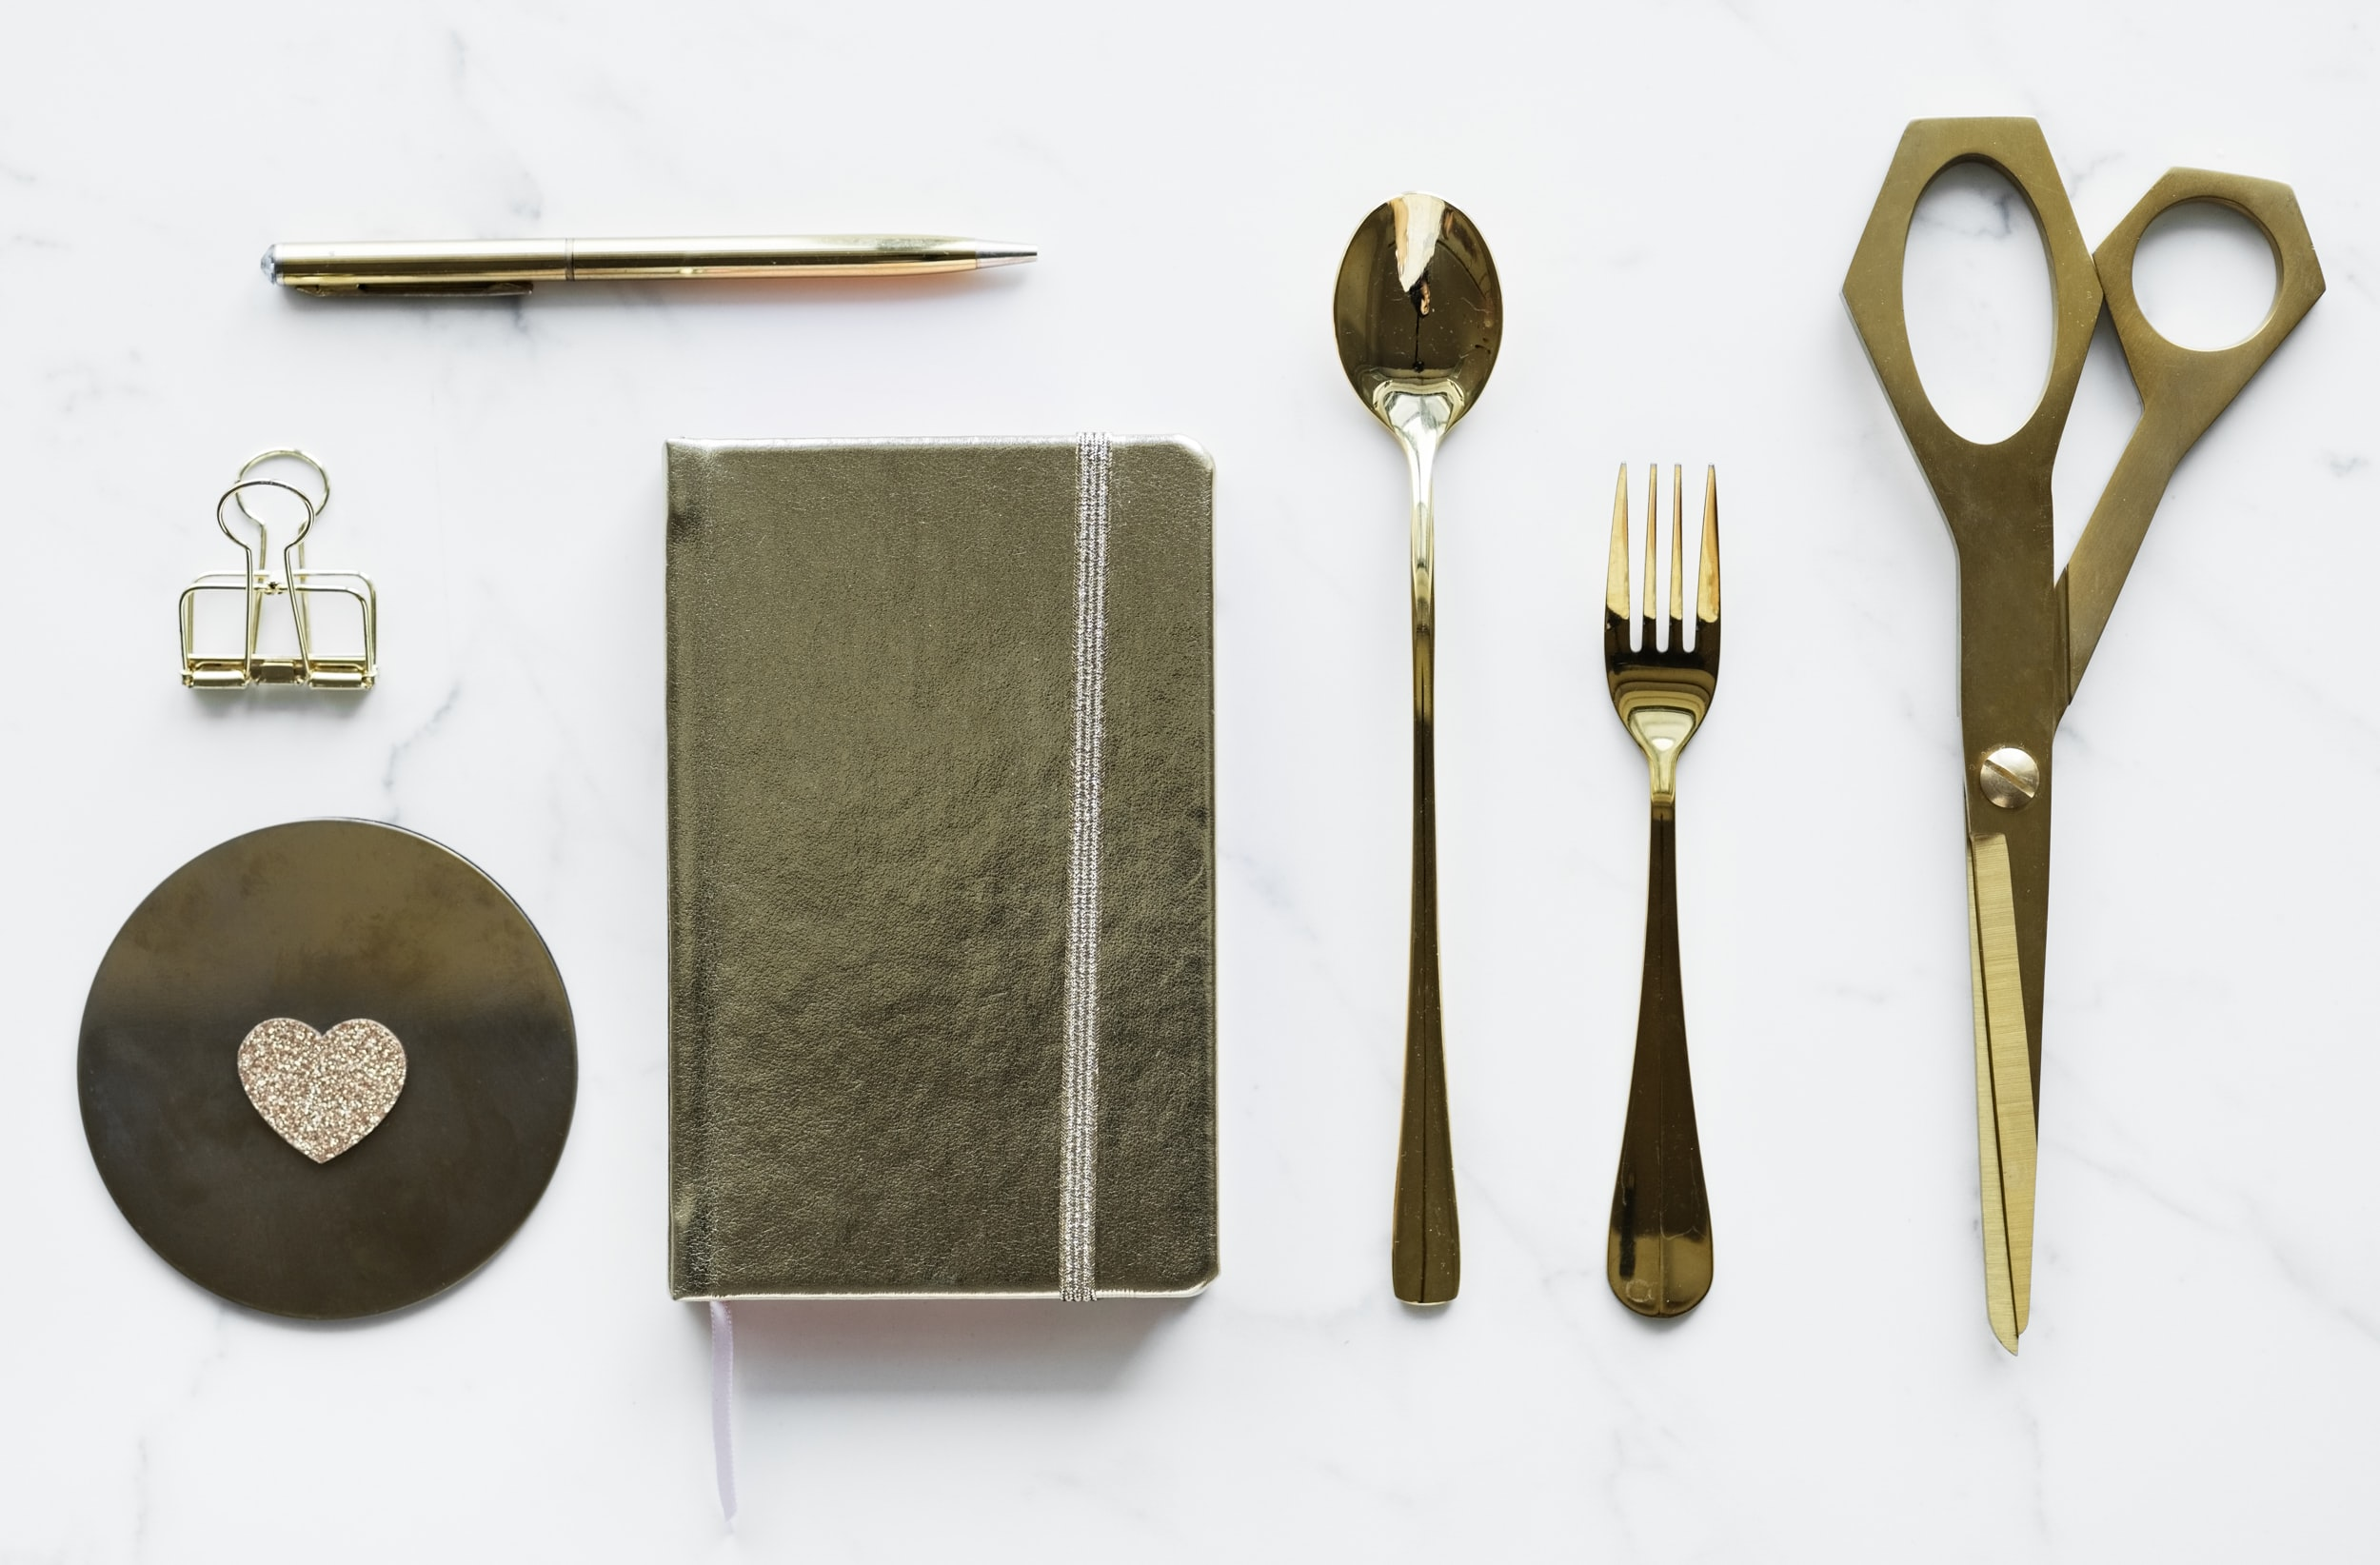 spoon and fork on top of desk